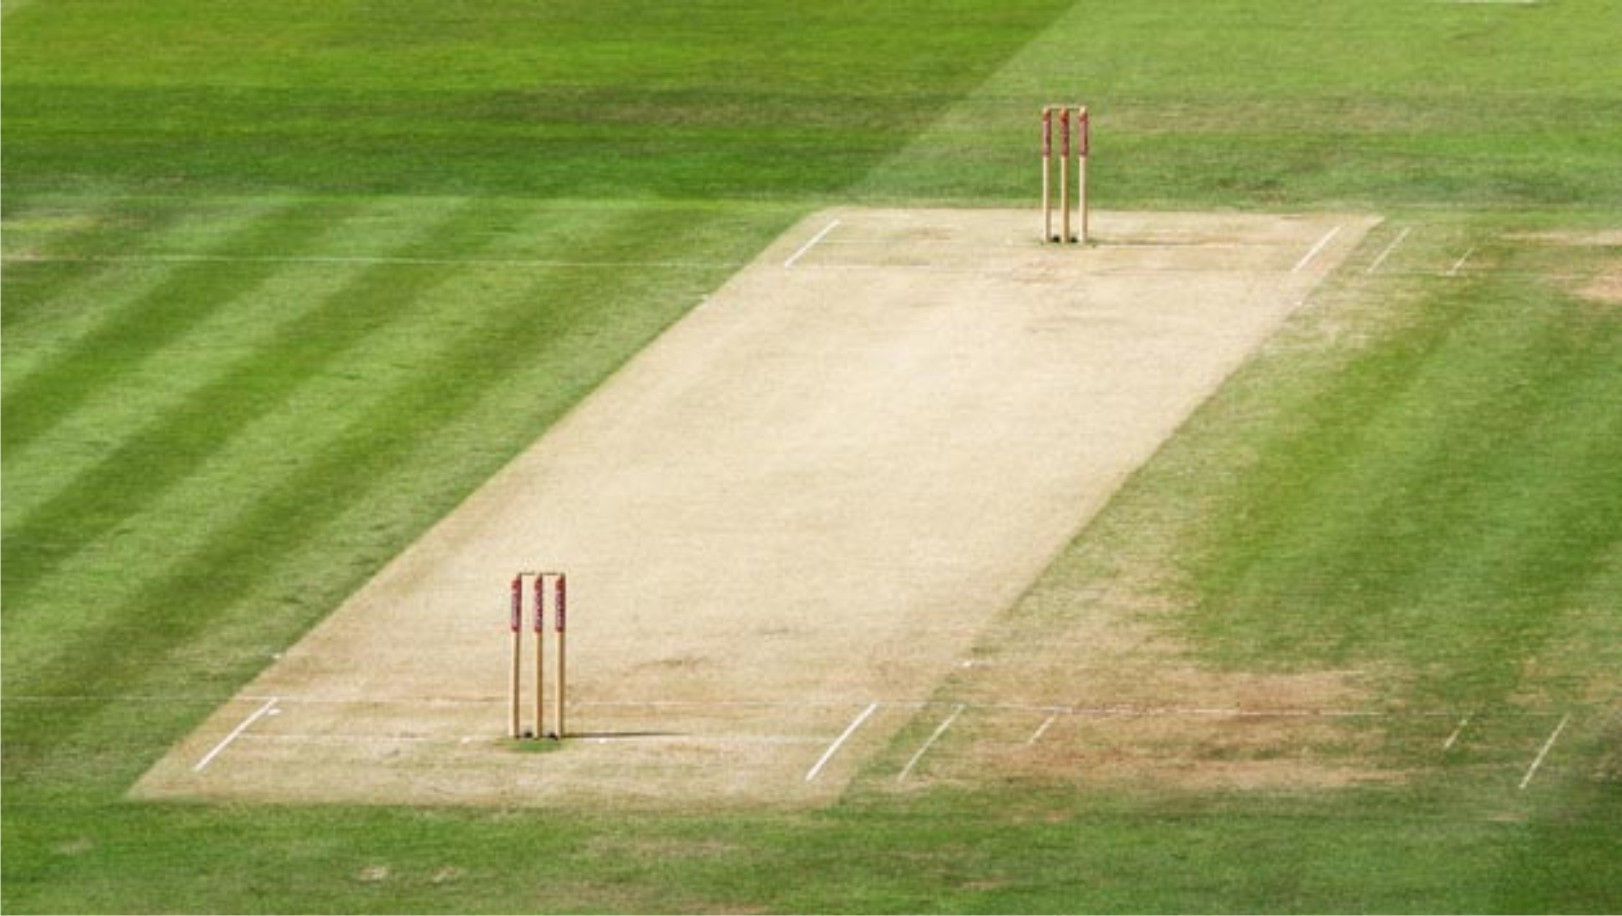 Pitches in ODI Cricket